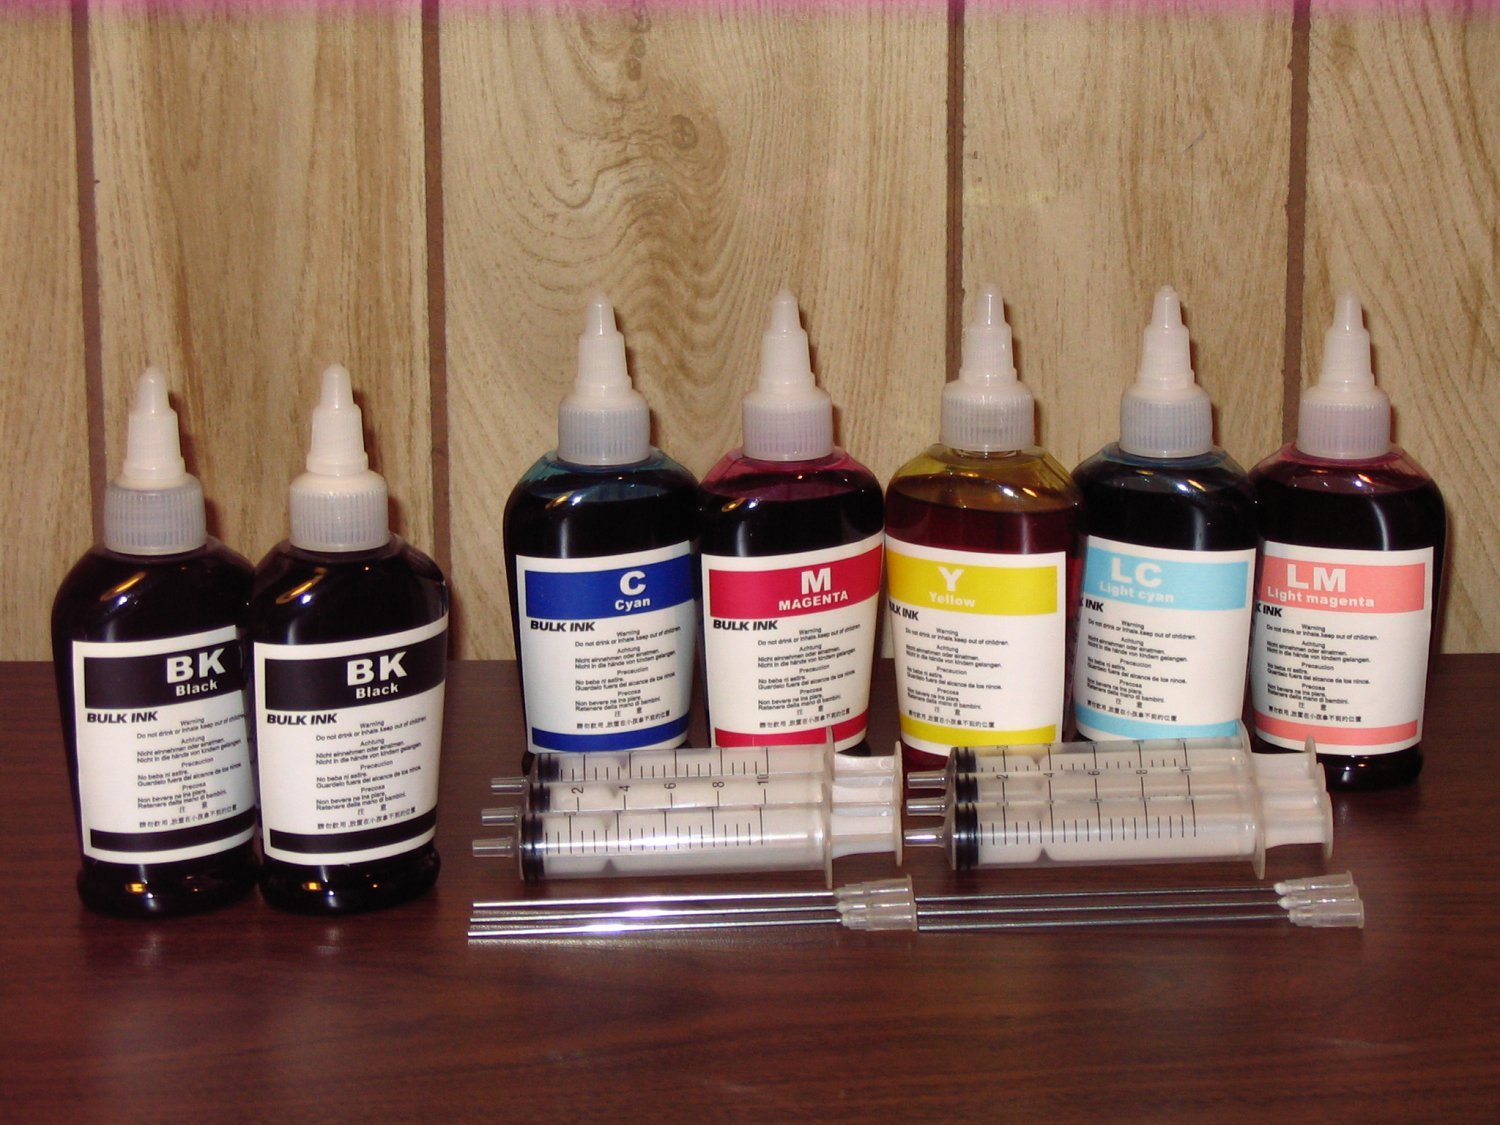 Bulk universal refill ink for EPSON, HP, CANON ink printer 100ml x 7 bottles, total 700ml